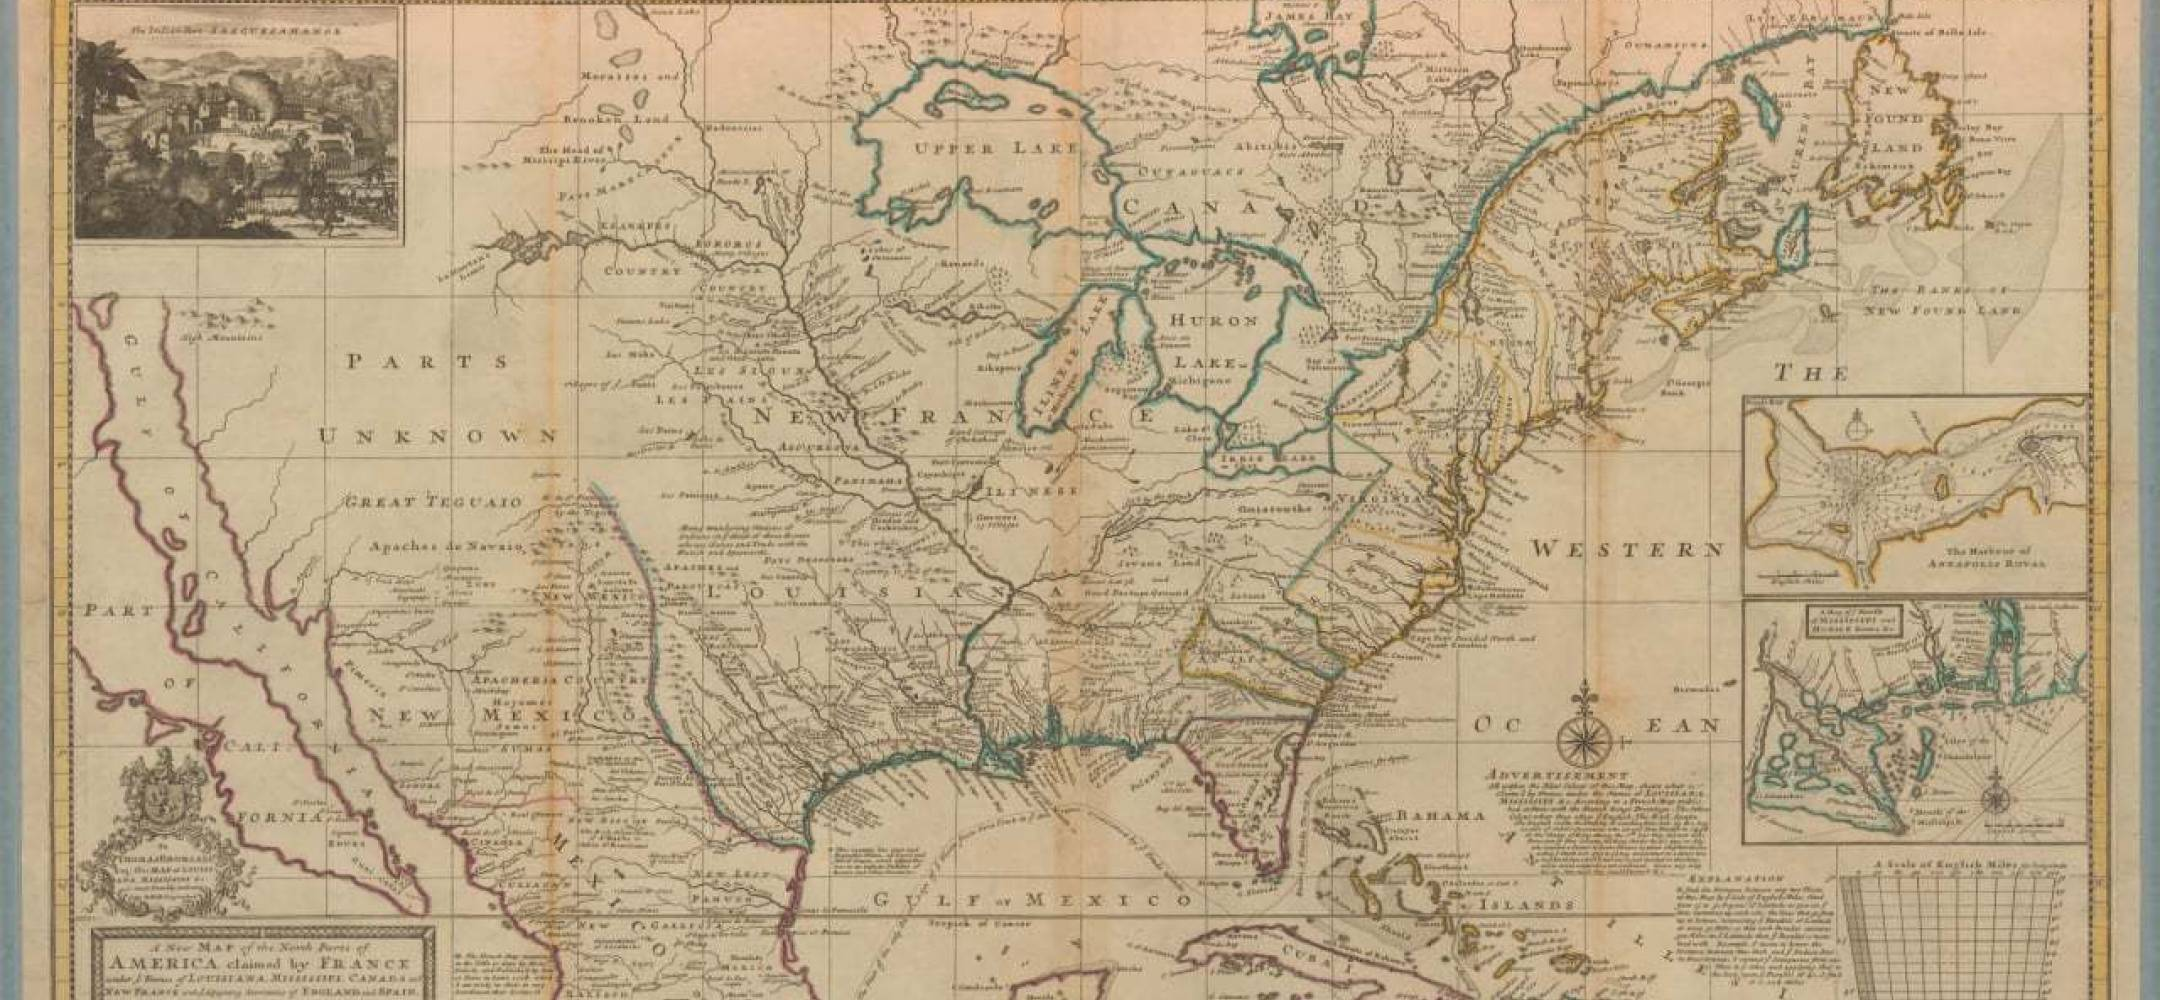 How America Became America: Major U.S. Land Acquisitions